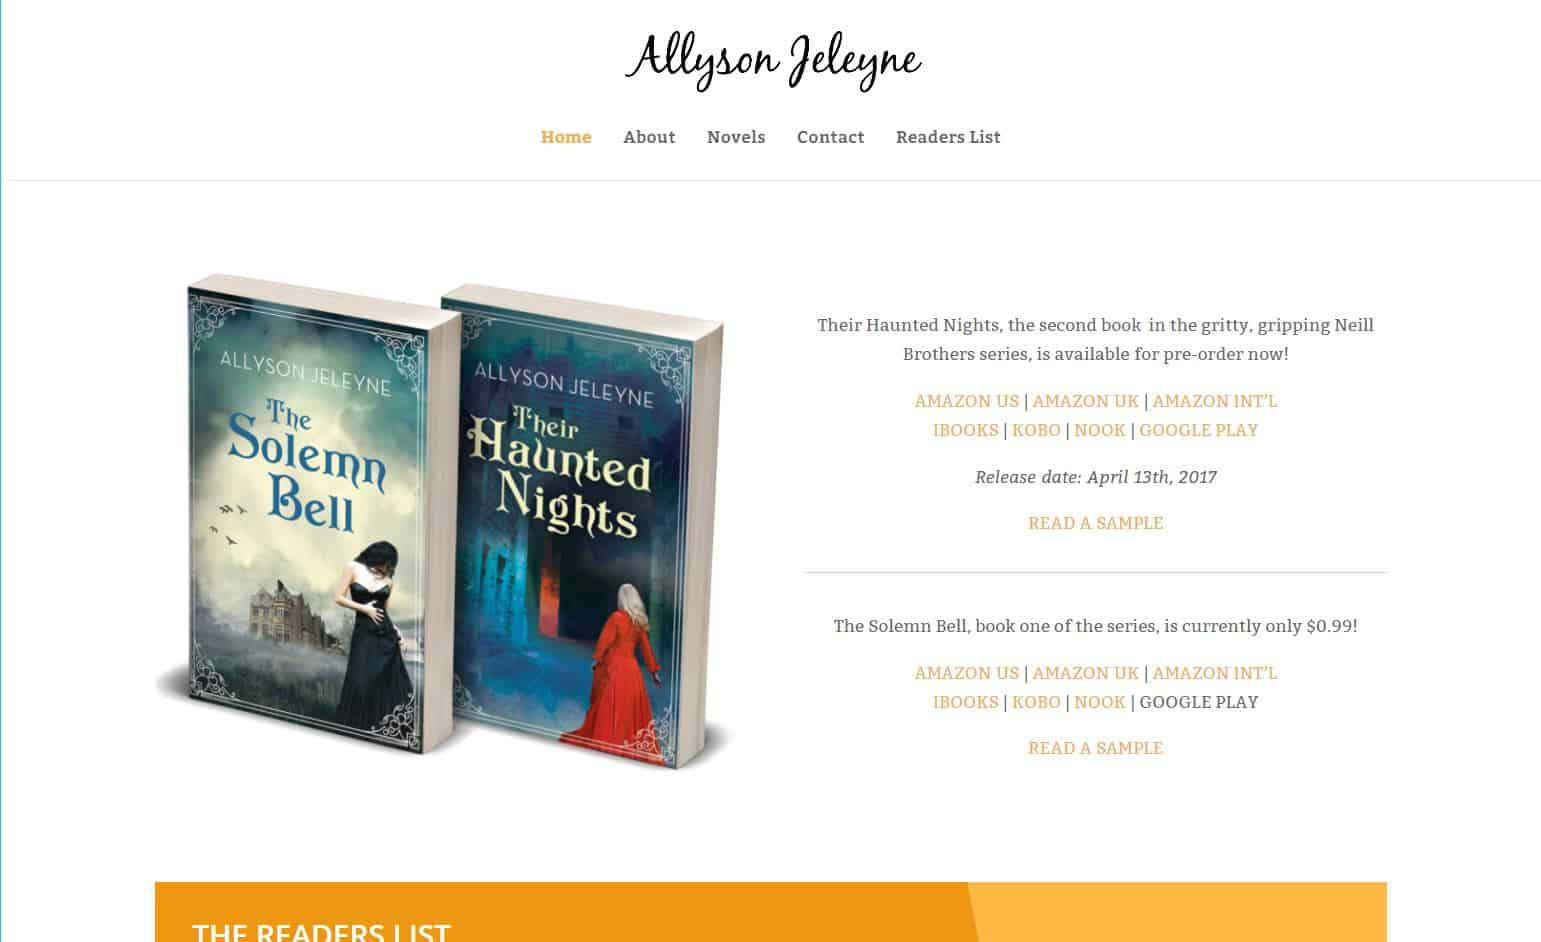 Allyson - Author website